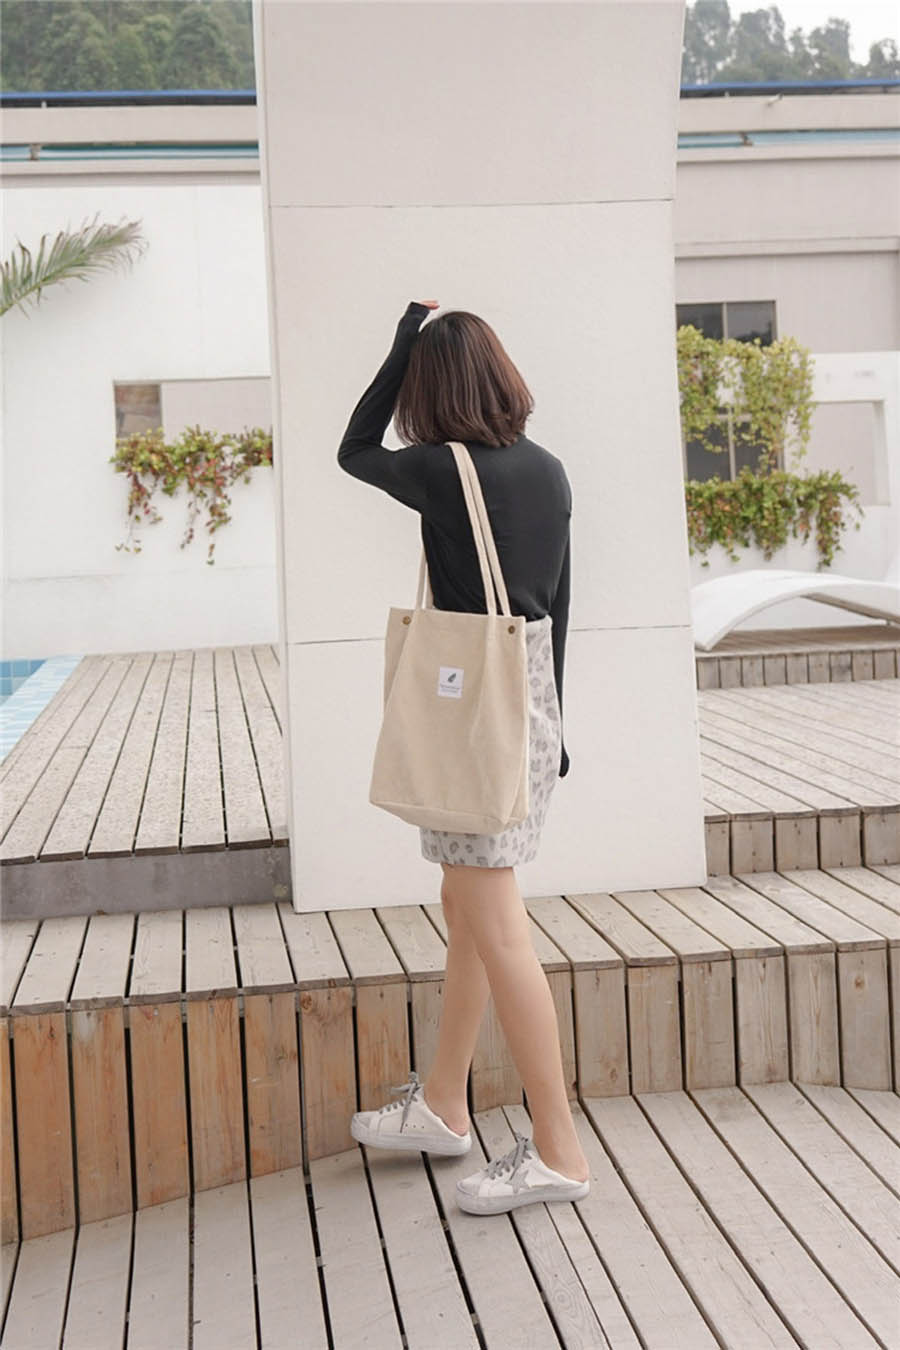 Mara's Dream High Capacity Women Corduroy Tote Ladies Casual Solid Color Shoulder Bag Foldable Reusable Women Shopping Beach Bag 32